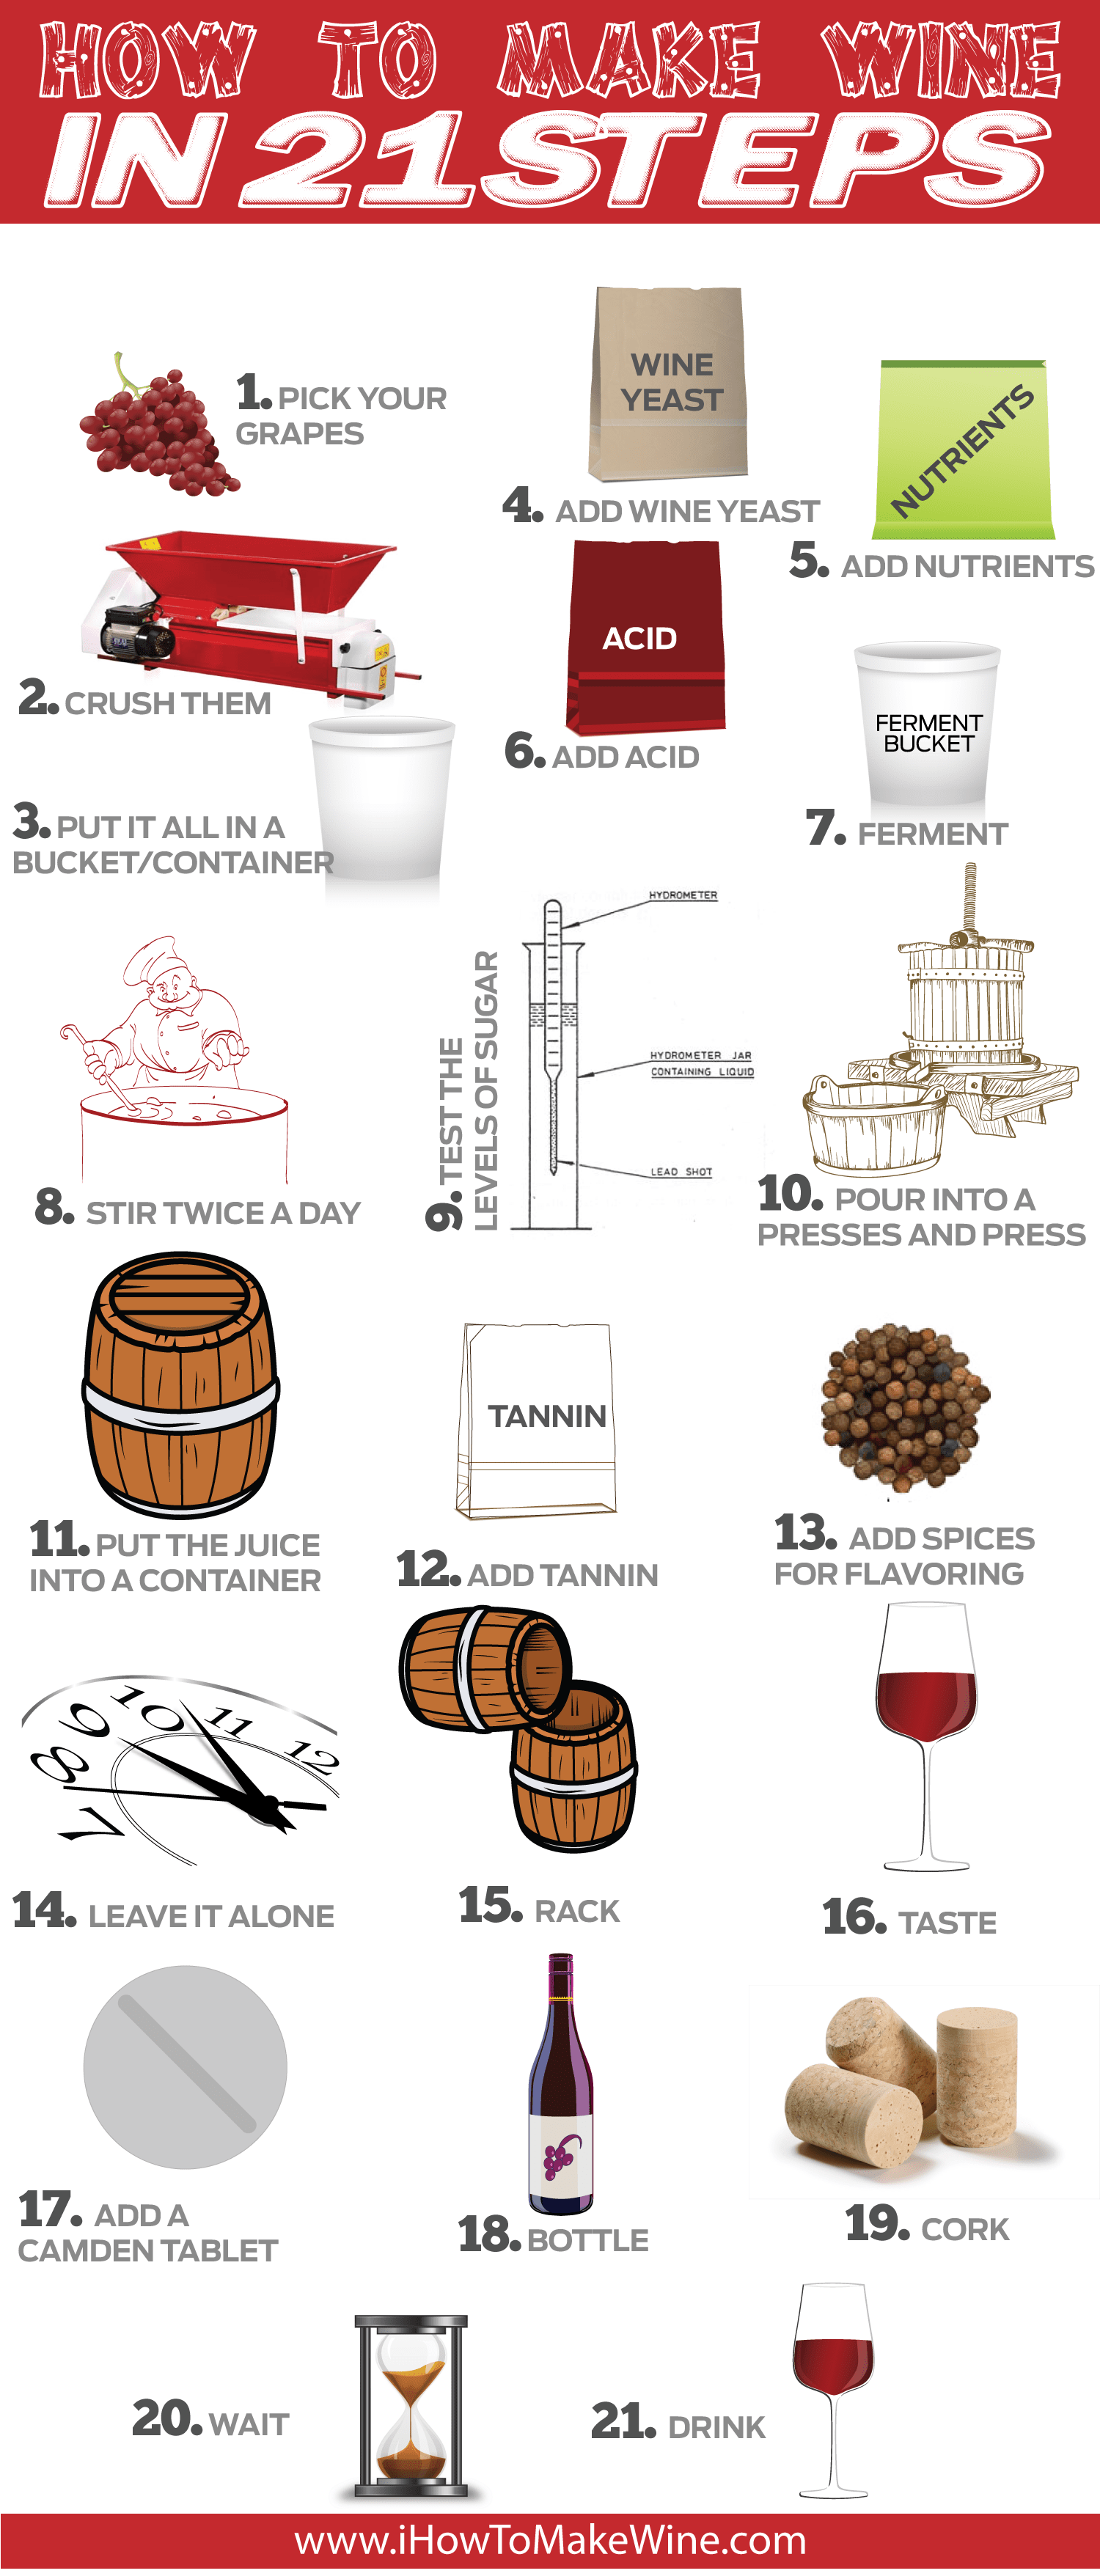 how to make wine in 21 steps